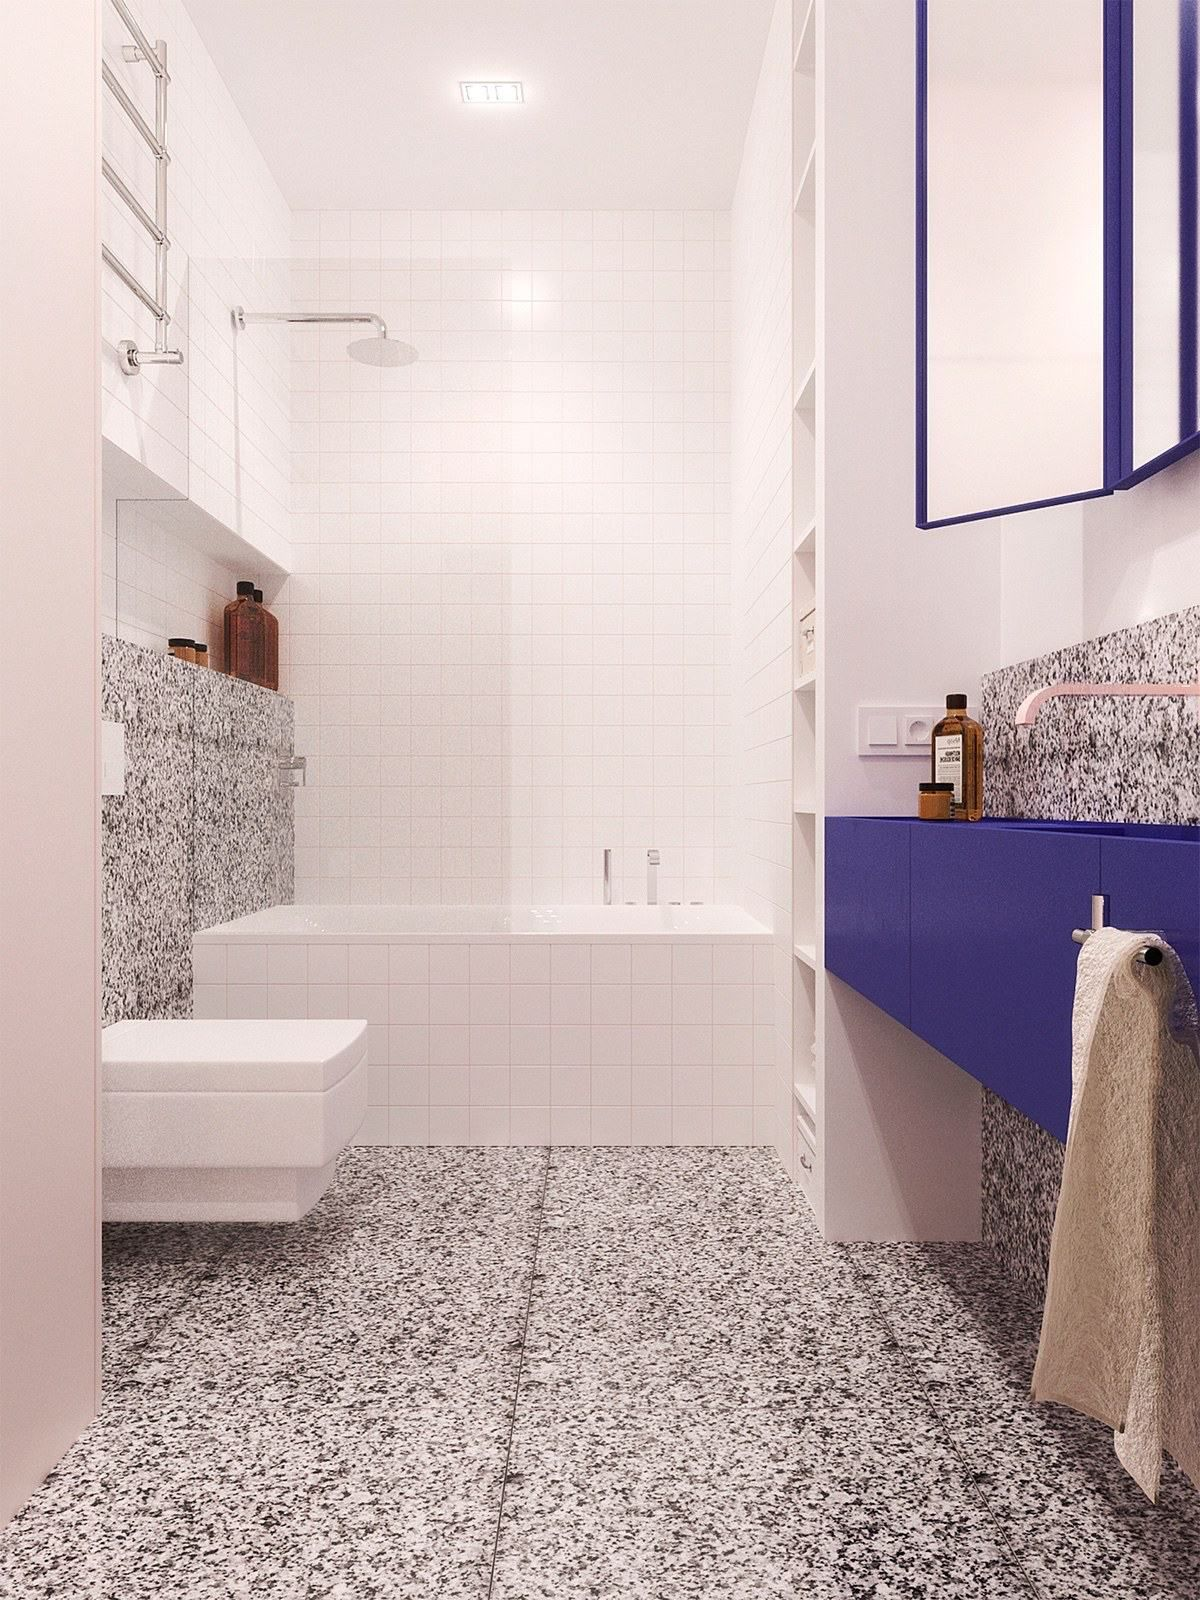 Fabulous Small Bathroom Design With Soft Color... | Visit : Roohome.com